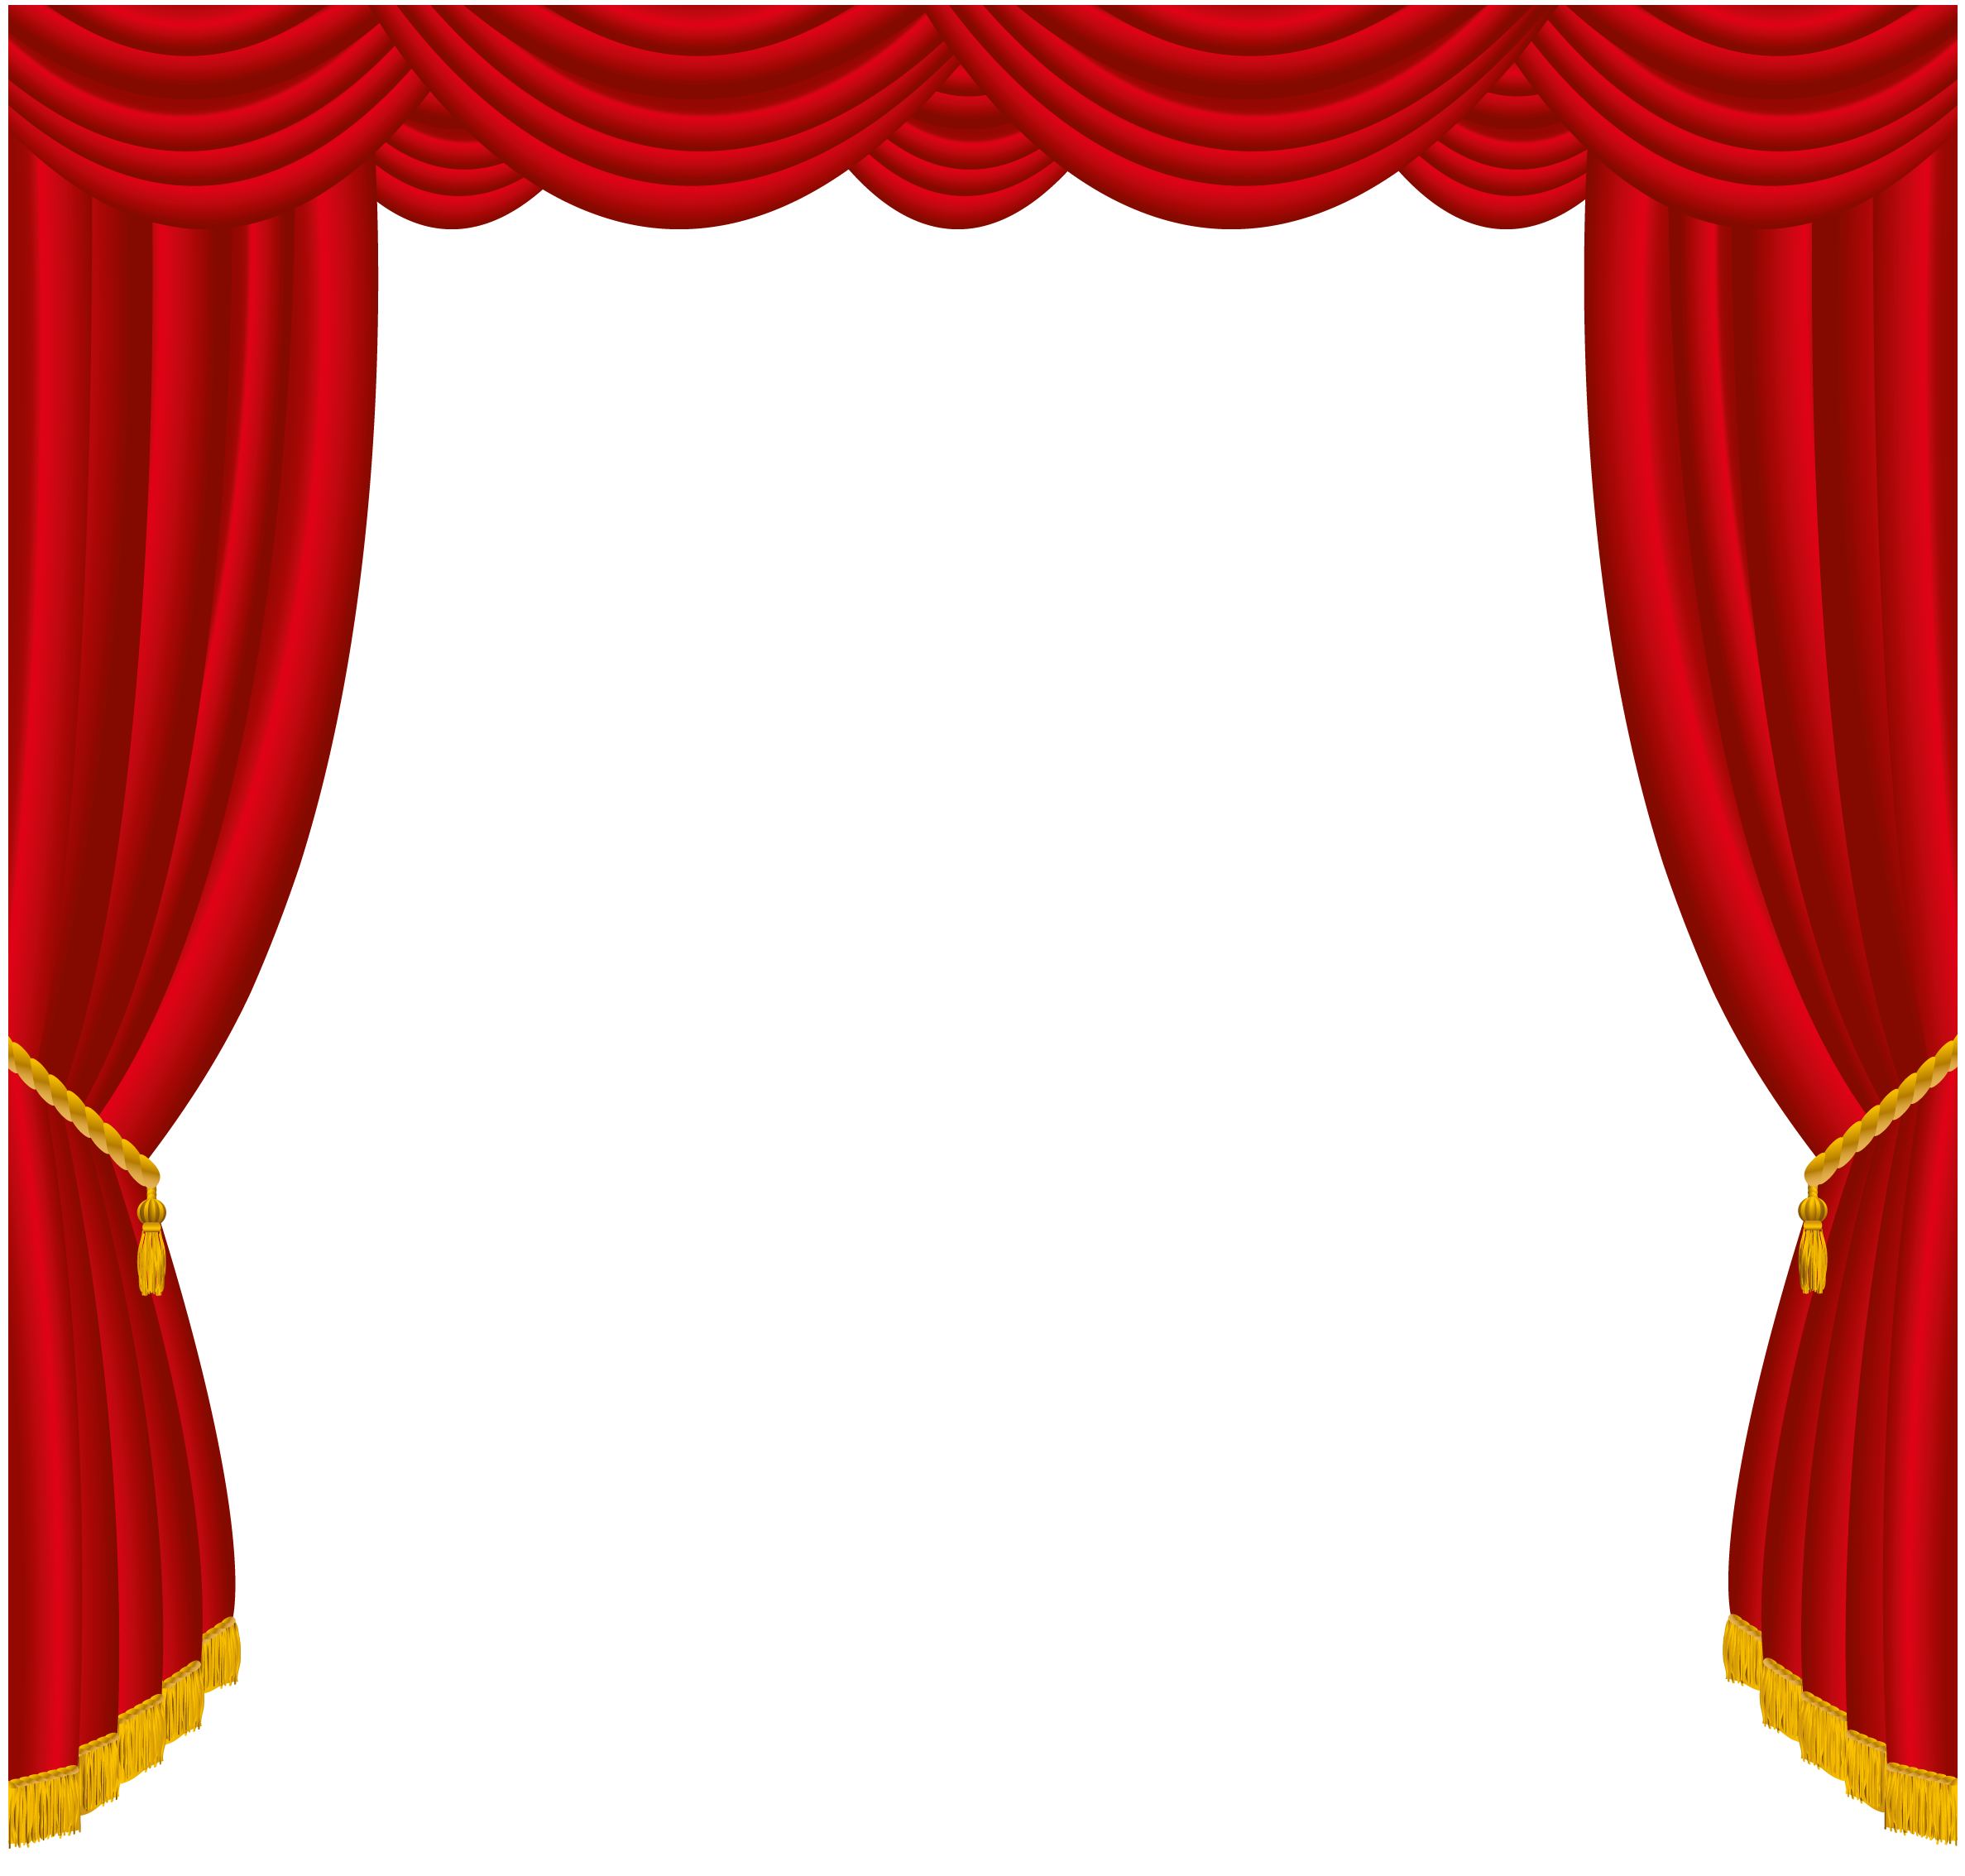 clip royalty free download Transparent Red Curtains Decor PNG Clipart